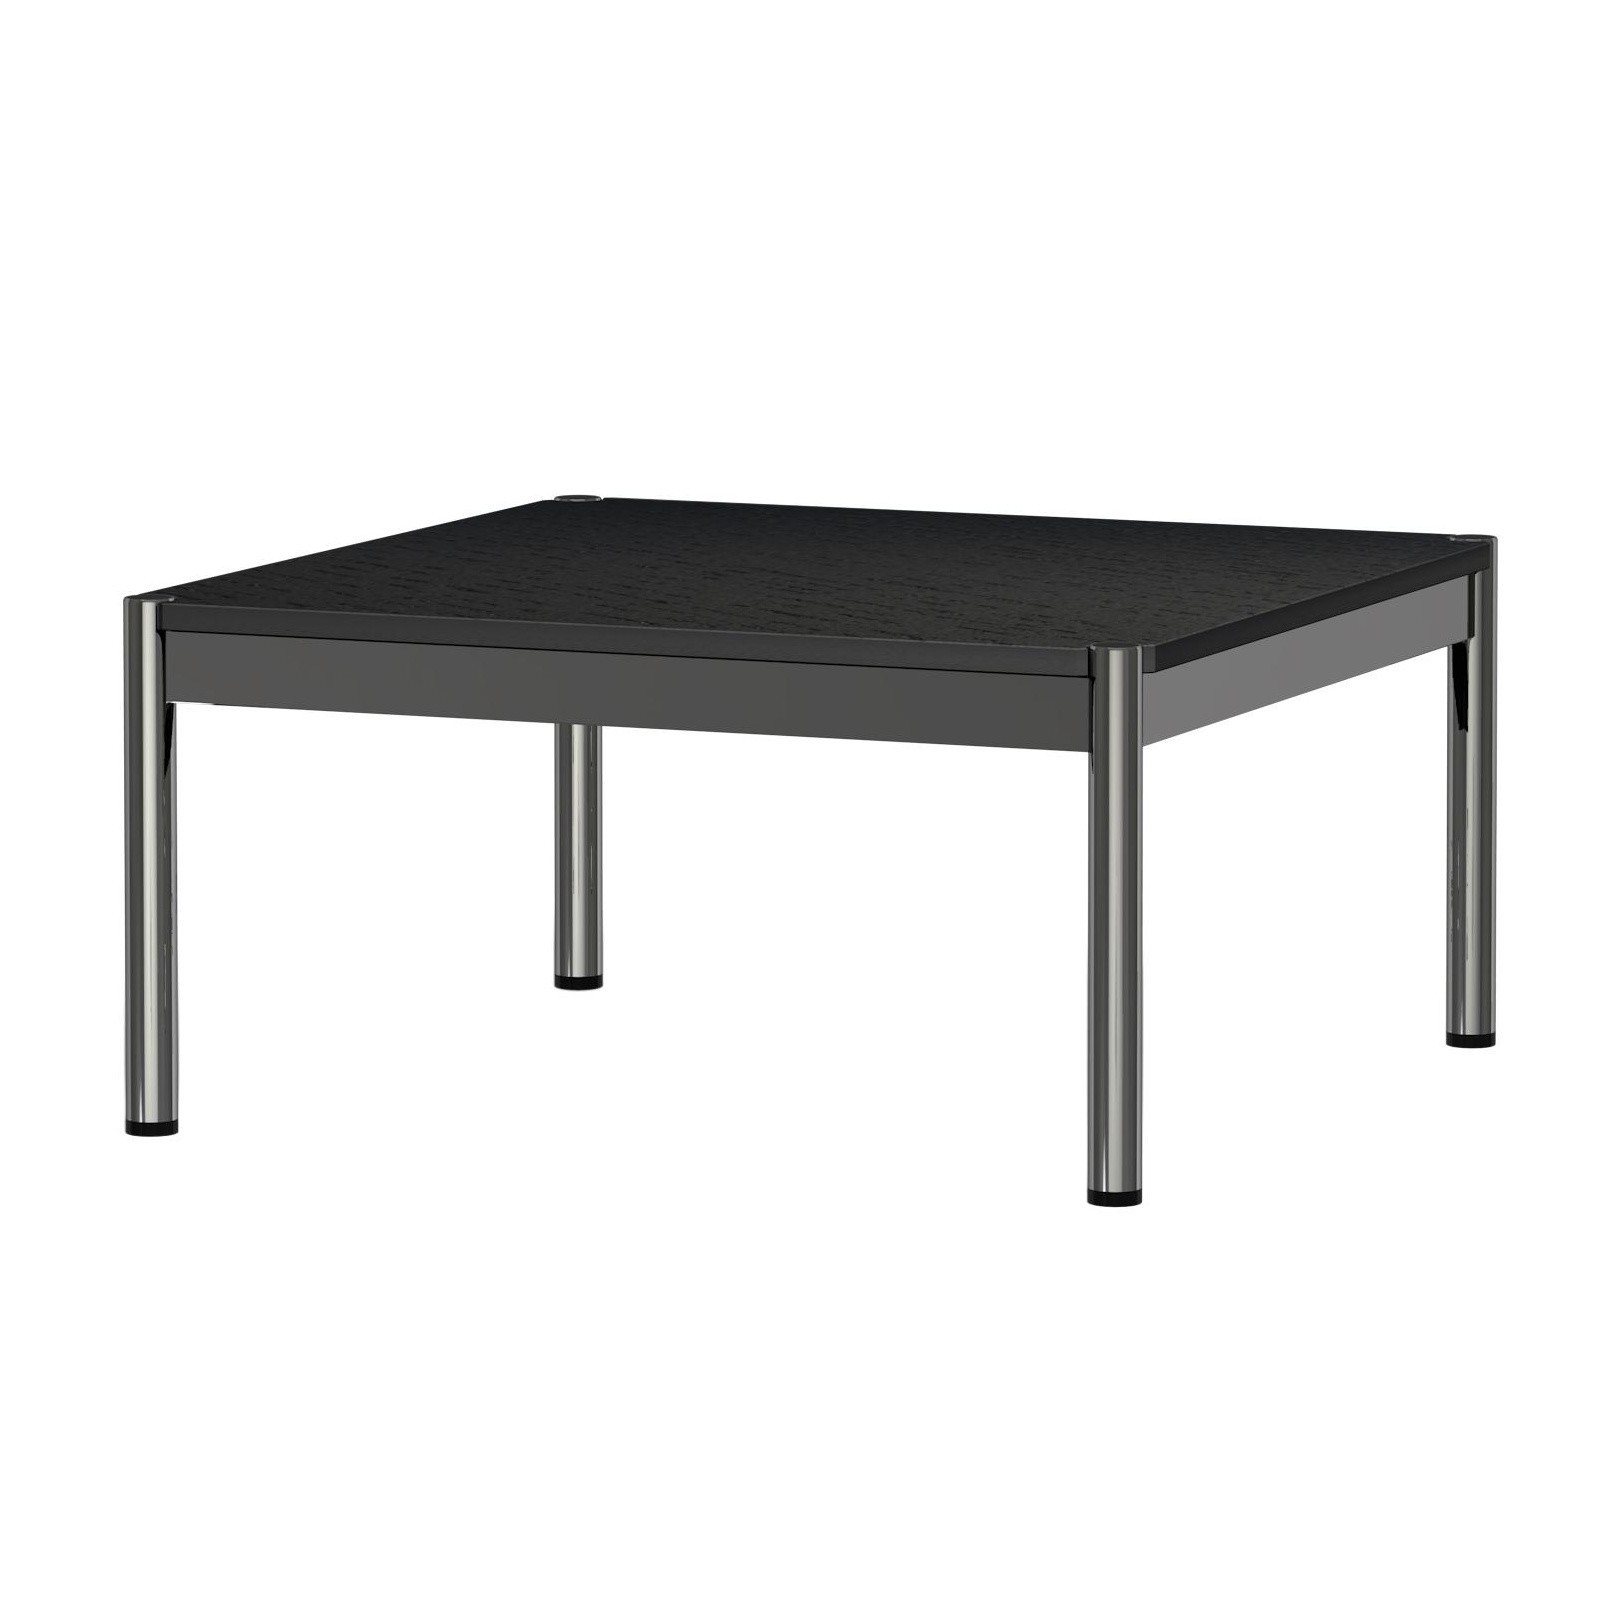 Usm Couchtisch Usm Haller Coffee Table 75x75x37